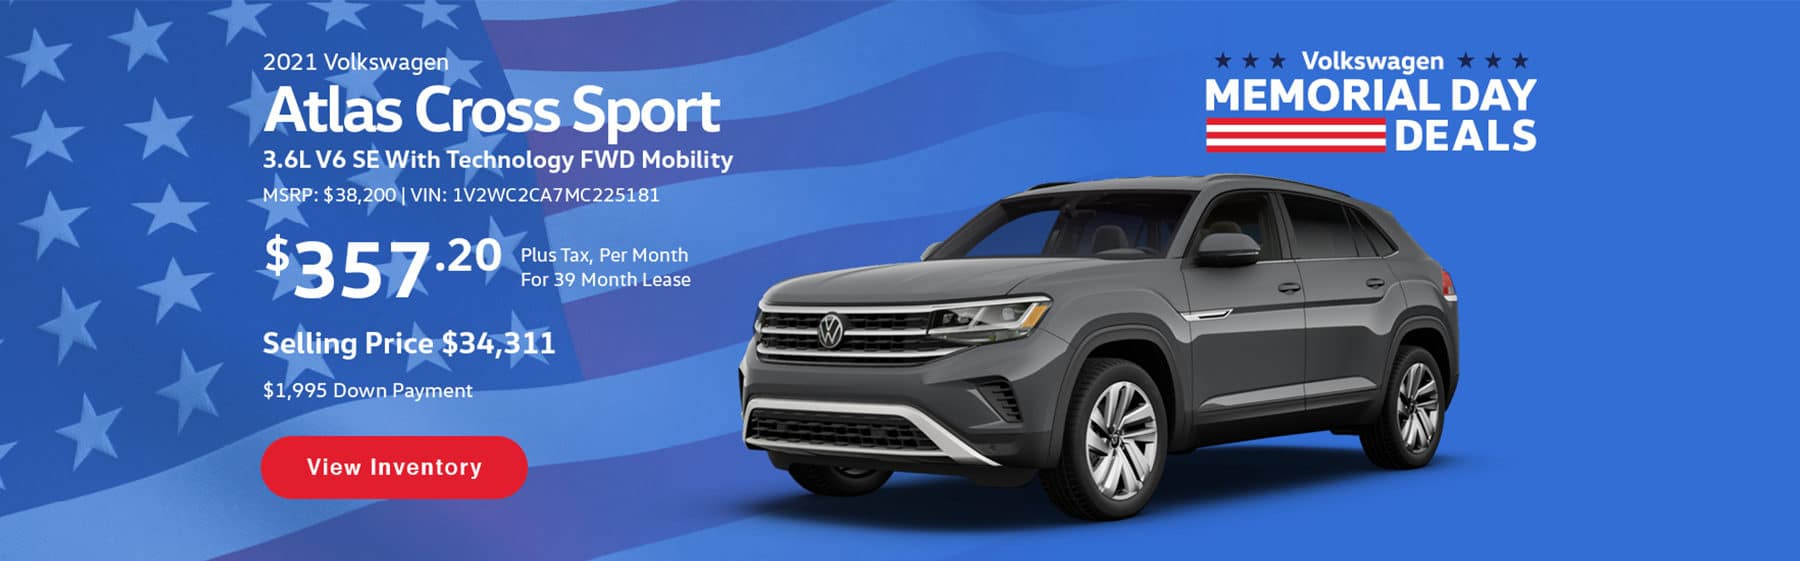 Lease the 2021 Volkswagen Atlas Cross Sport for $357.20 per month, plus tax, for 39 months. Selling price is $34,311.